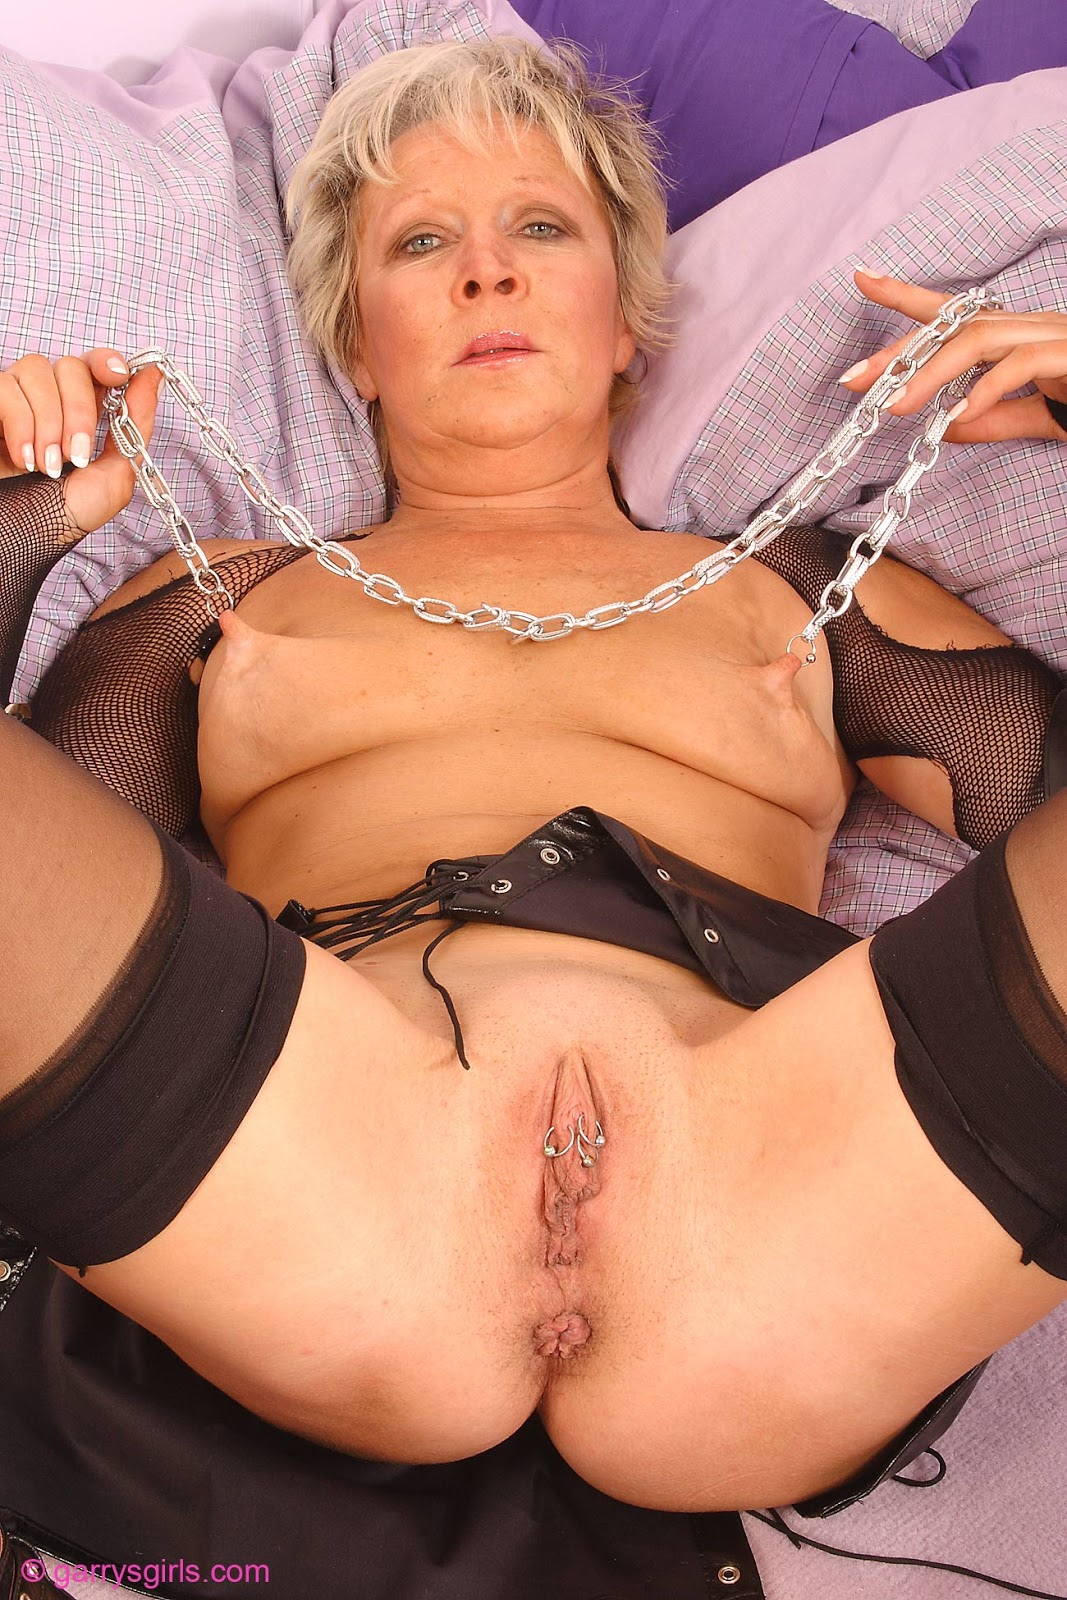 Archive Of Old Women Passionate Mature Pics-7686